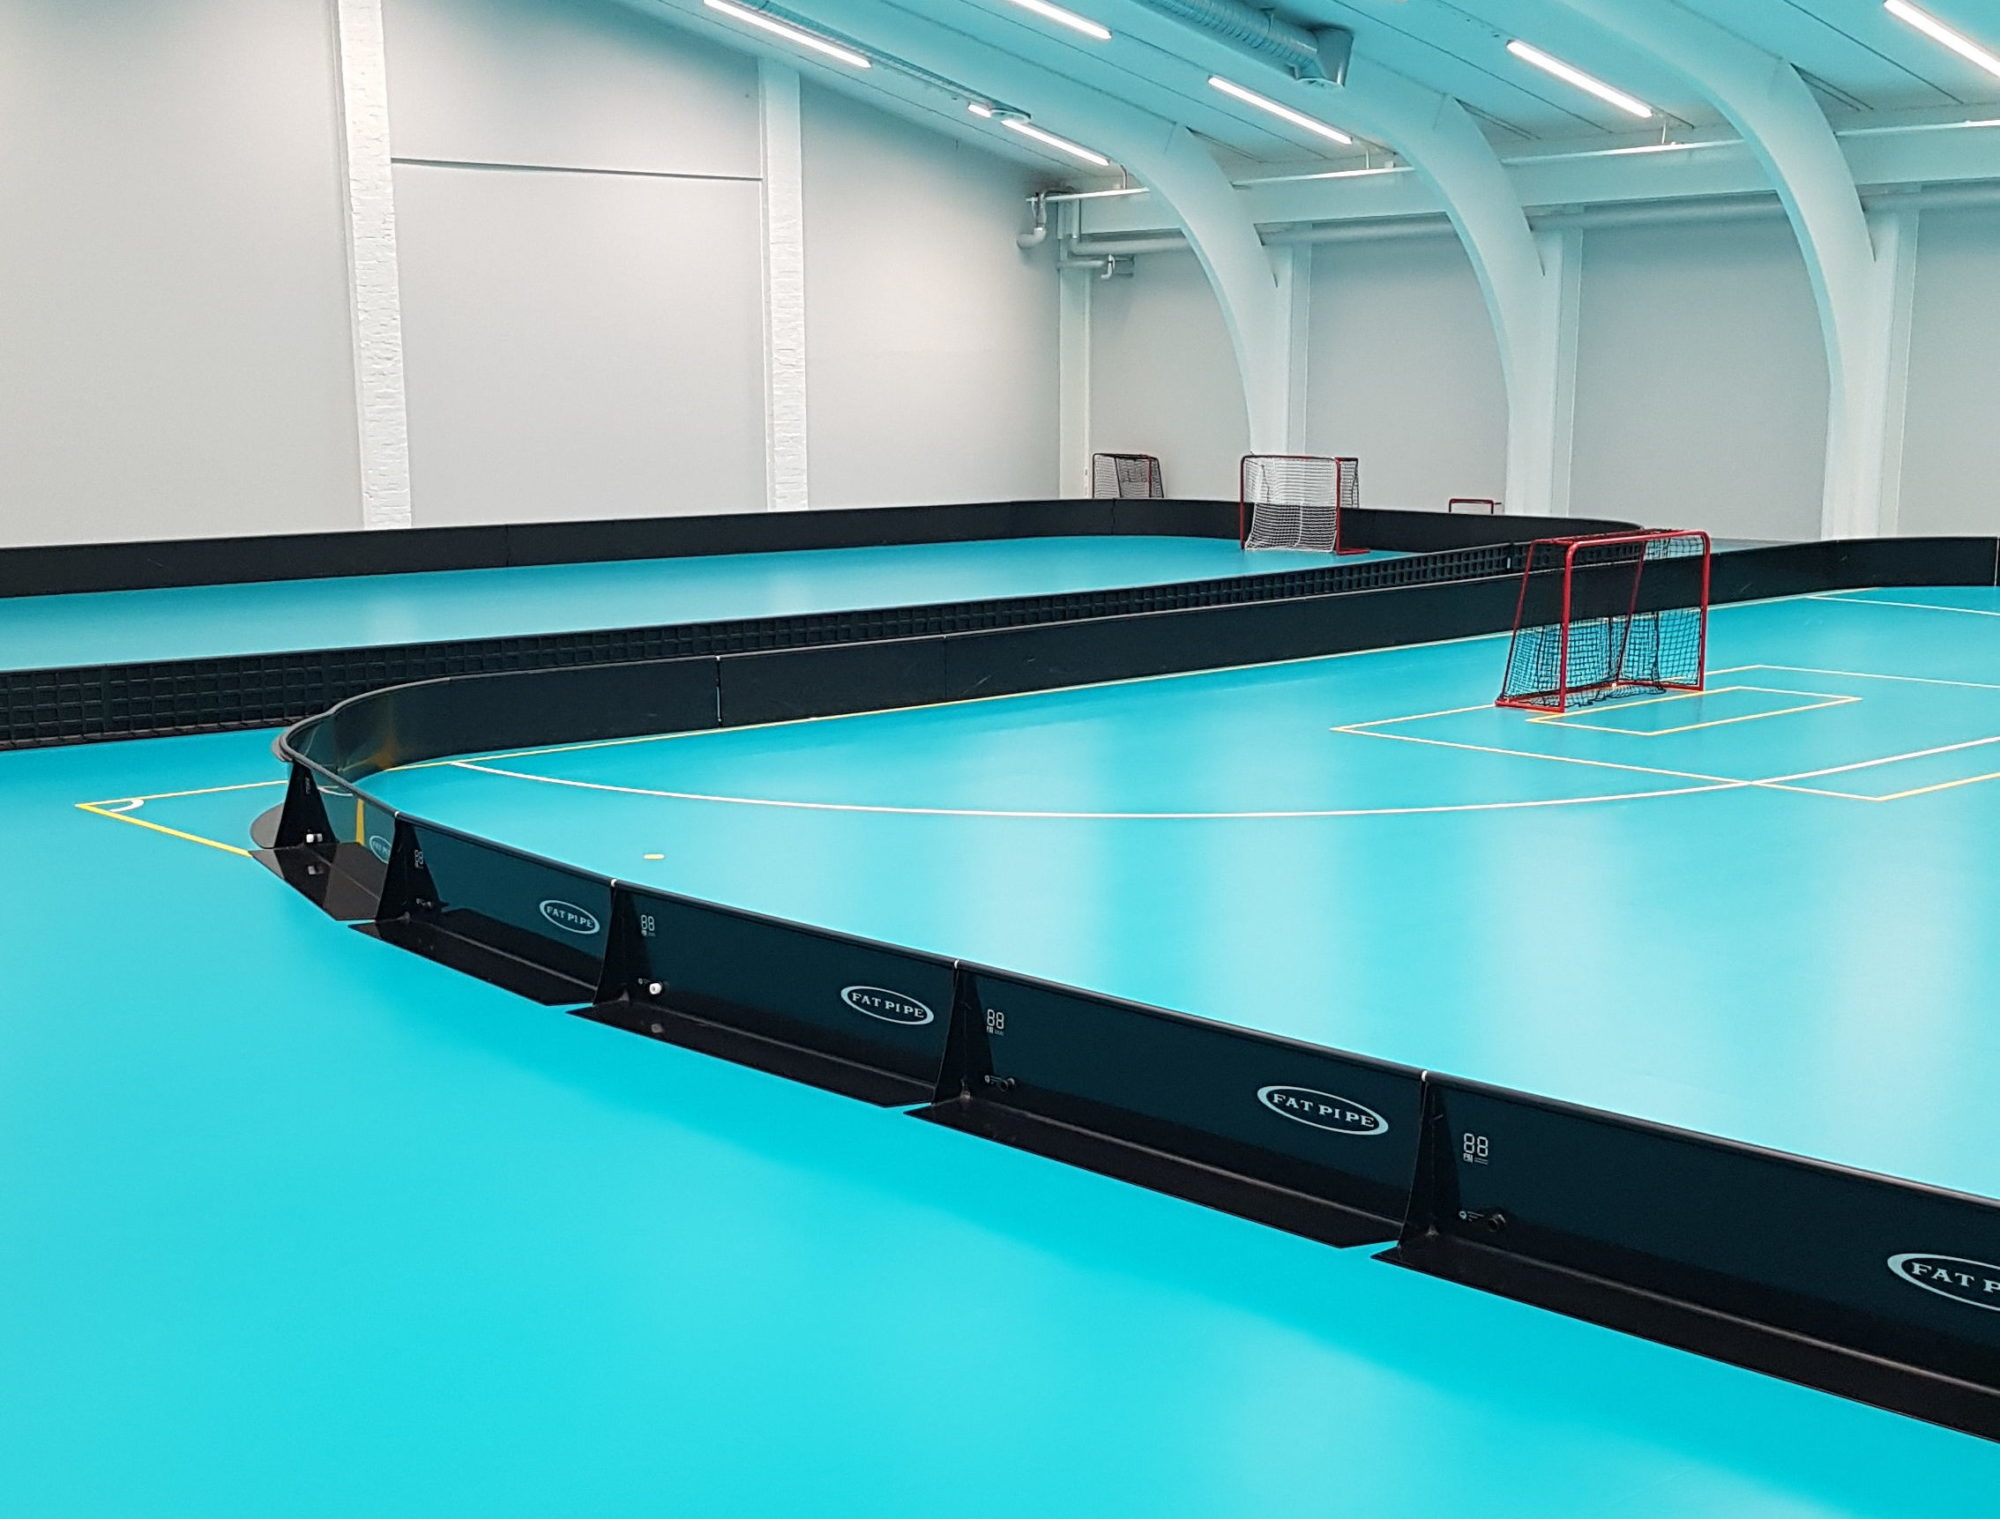 Rettig Sport Center Pietarsaari 4000 m2